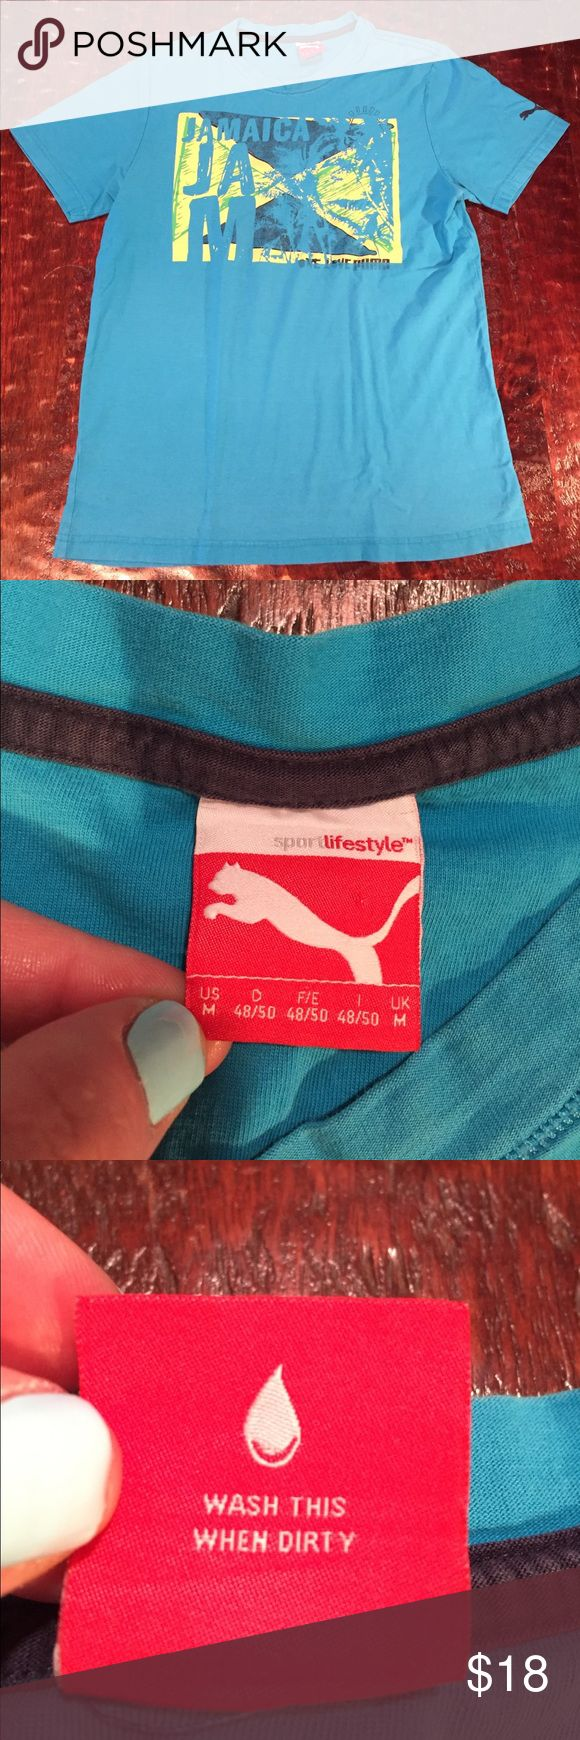 "Puma Jamaica Graphic Tee Medium Puma Jamaica Graphic Tee. Tee is 25 1/2"" from shoulder to hem. Chest measures 19"" laying flat. Tee is in great condition. The laundry label is missing, but this is the only sign of wear. Comes from a Smoke Free/Pet Friendly home. Offers always welcome. Puma Shirts Tees - Short Sleeve"